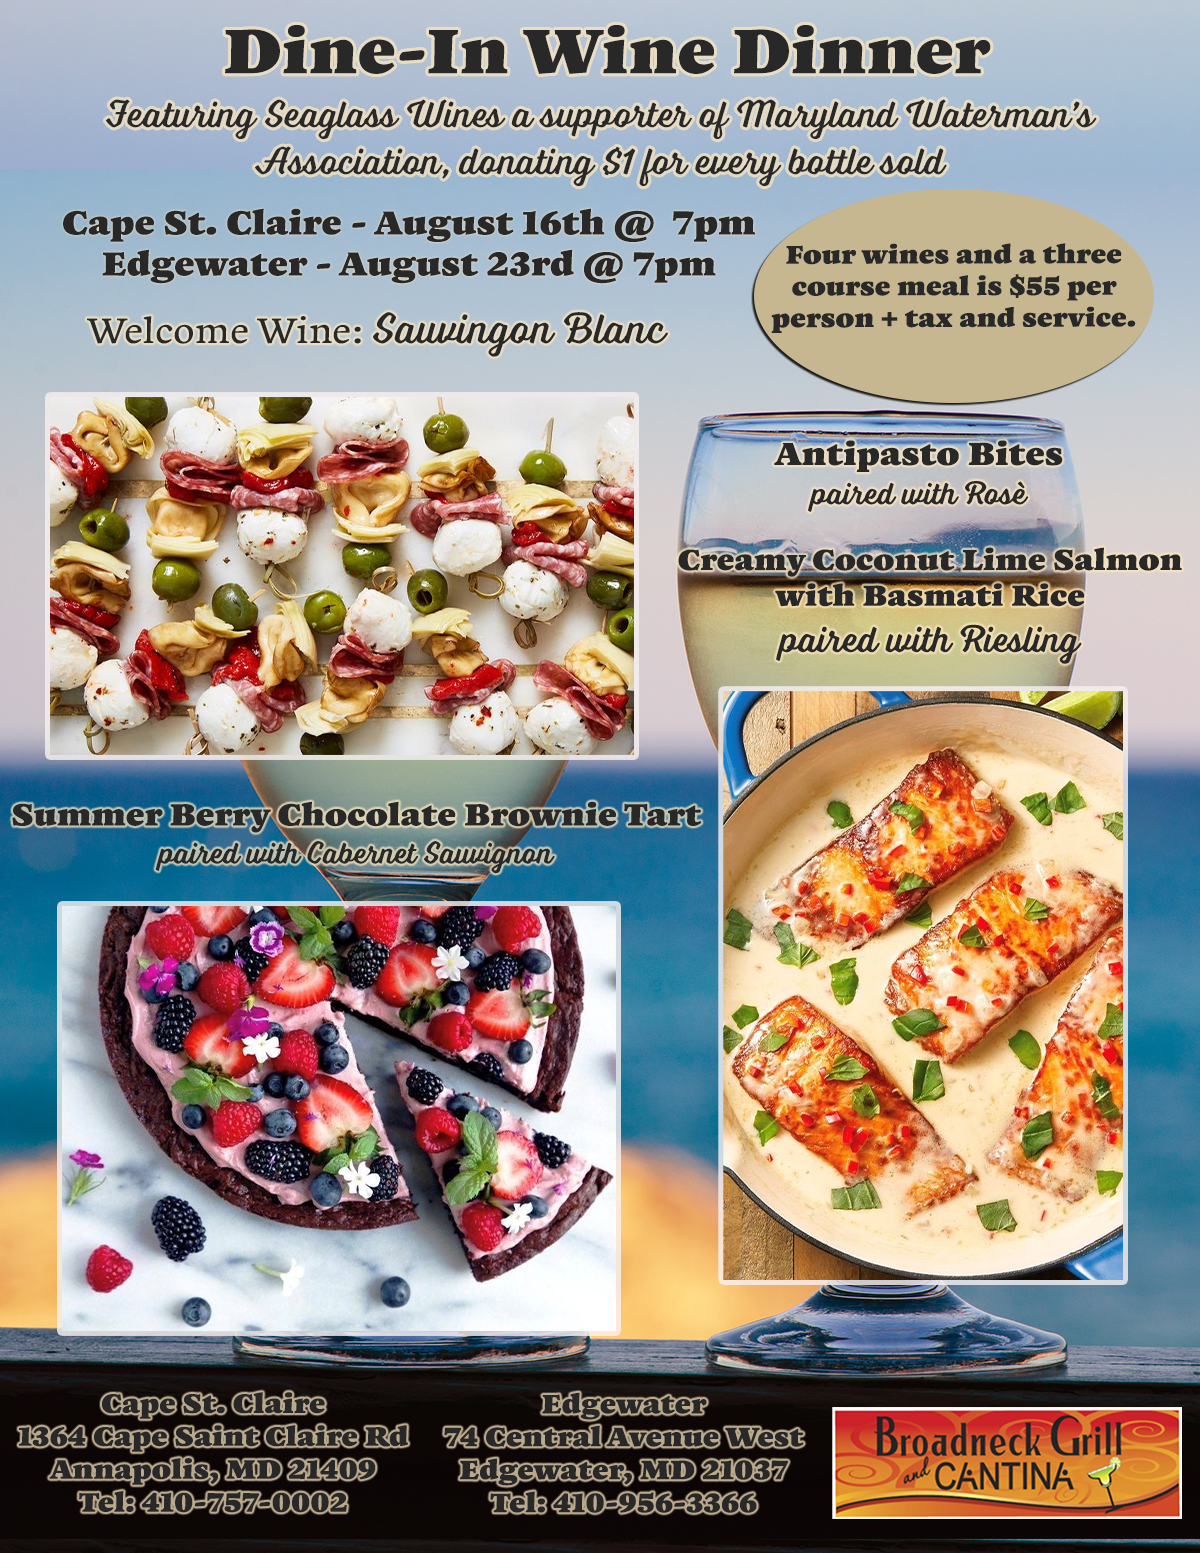 Dine In Wine Dinner!! featuring SeaGlass Wines, a supporter of Maryland Waterman's Association  (photo)  Cape St. Claire Aug 16th @ 7pm  Edgewater Aug 23rd @ 7pm  Welcome Wine: Sauvignon Blanc  Antipasto Bites paired with Rosé  (photo)  Creamy Coconut Lime Salmon with Basmati Rice paired with Riesling  (photo)  Summer Berry Chocolate Brownie Tart paired with Cabernet Sauvignon  (photo)  Four wines and a 3 course meal is $55. per person plus tax and service.